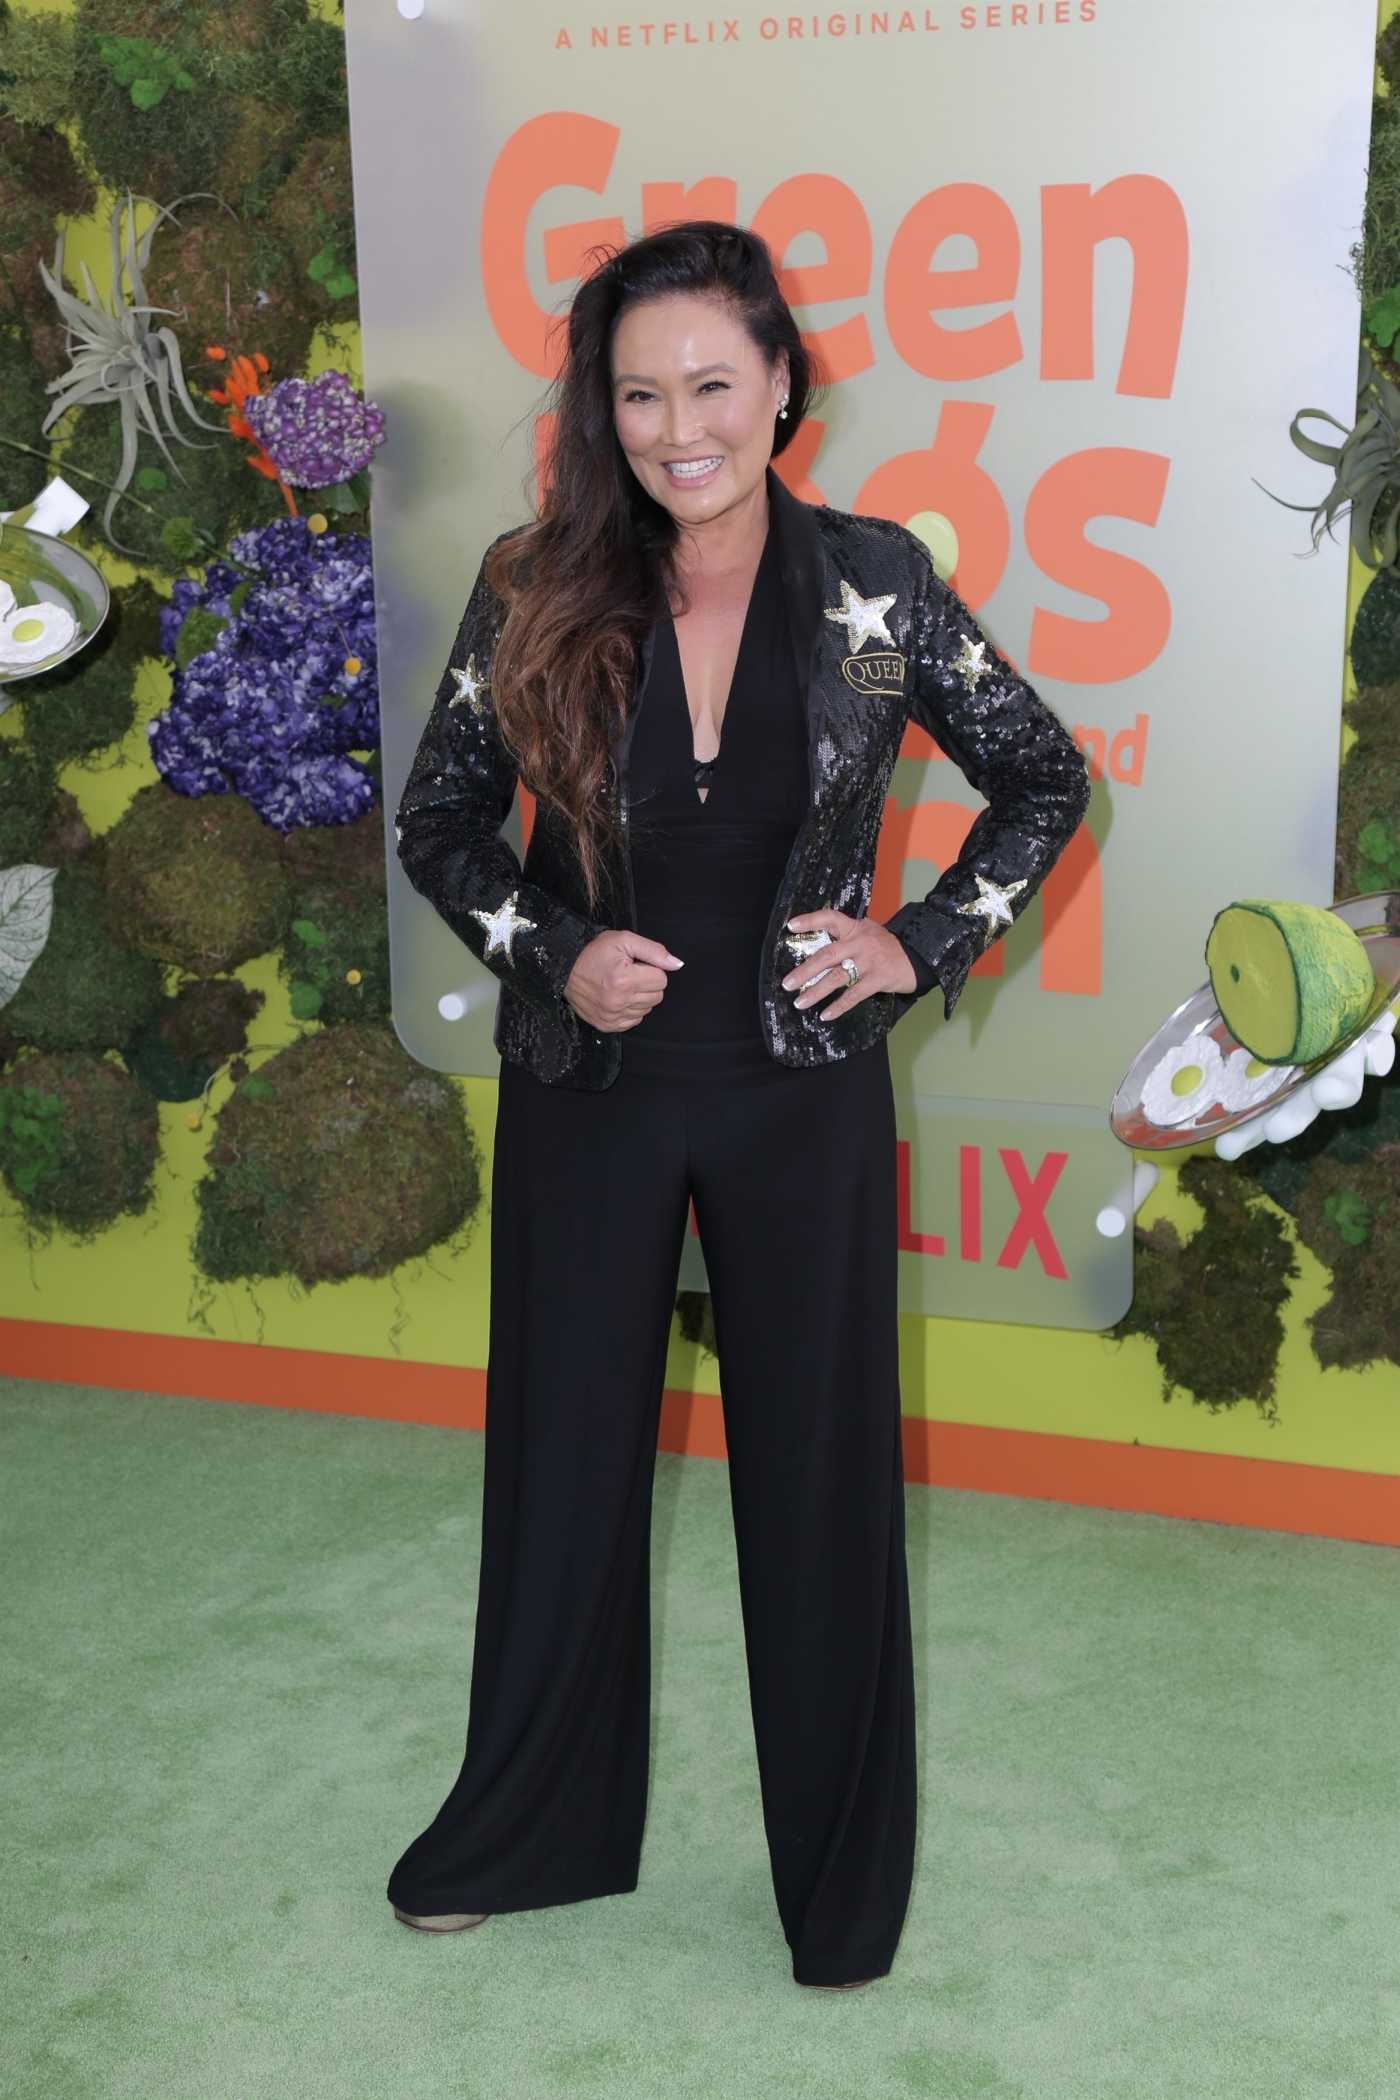 Tia Carrere Attends Netflix's Green Eggs and Ham Premiere at Hollywood American Legion in Los Angeles 11/03/2019